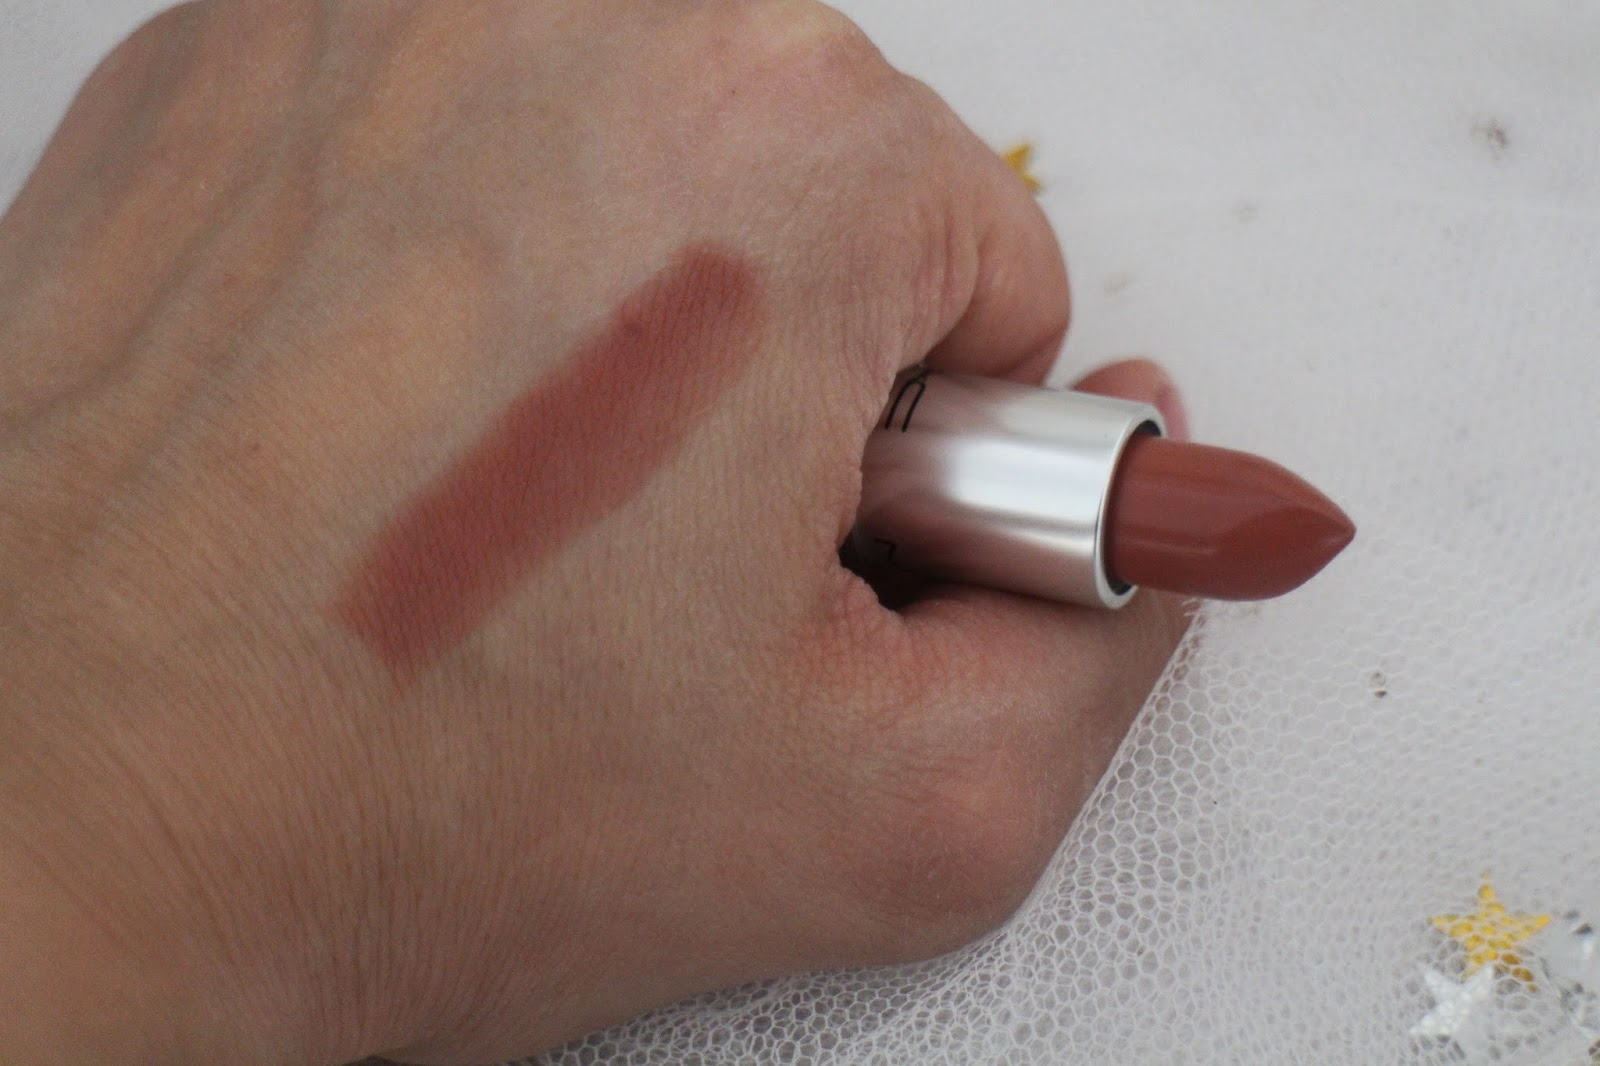 MAC lipstick. MAC lipstick review, Kylie Jenner lips, How to get Kylie Jenners lips, Kylie Jenner Lipstick, MAC Velvet Teddy Lipstick, MAC Lipstick swatch, Beauty